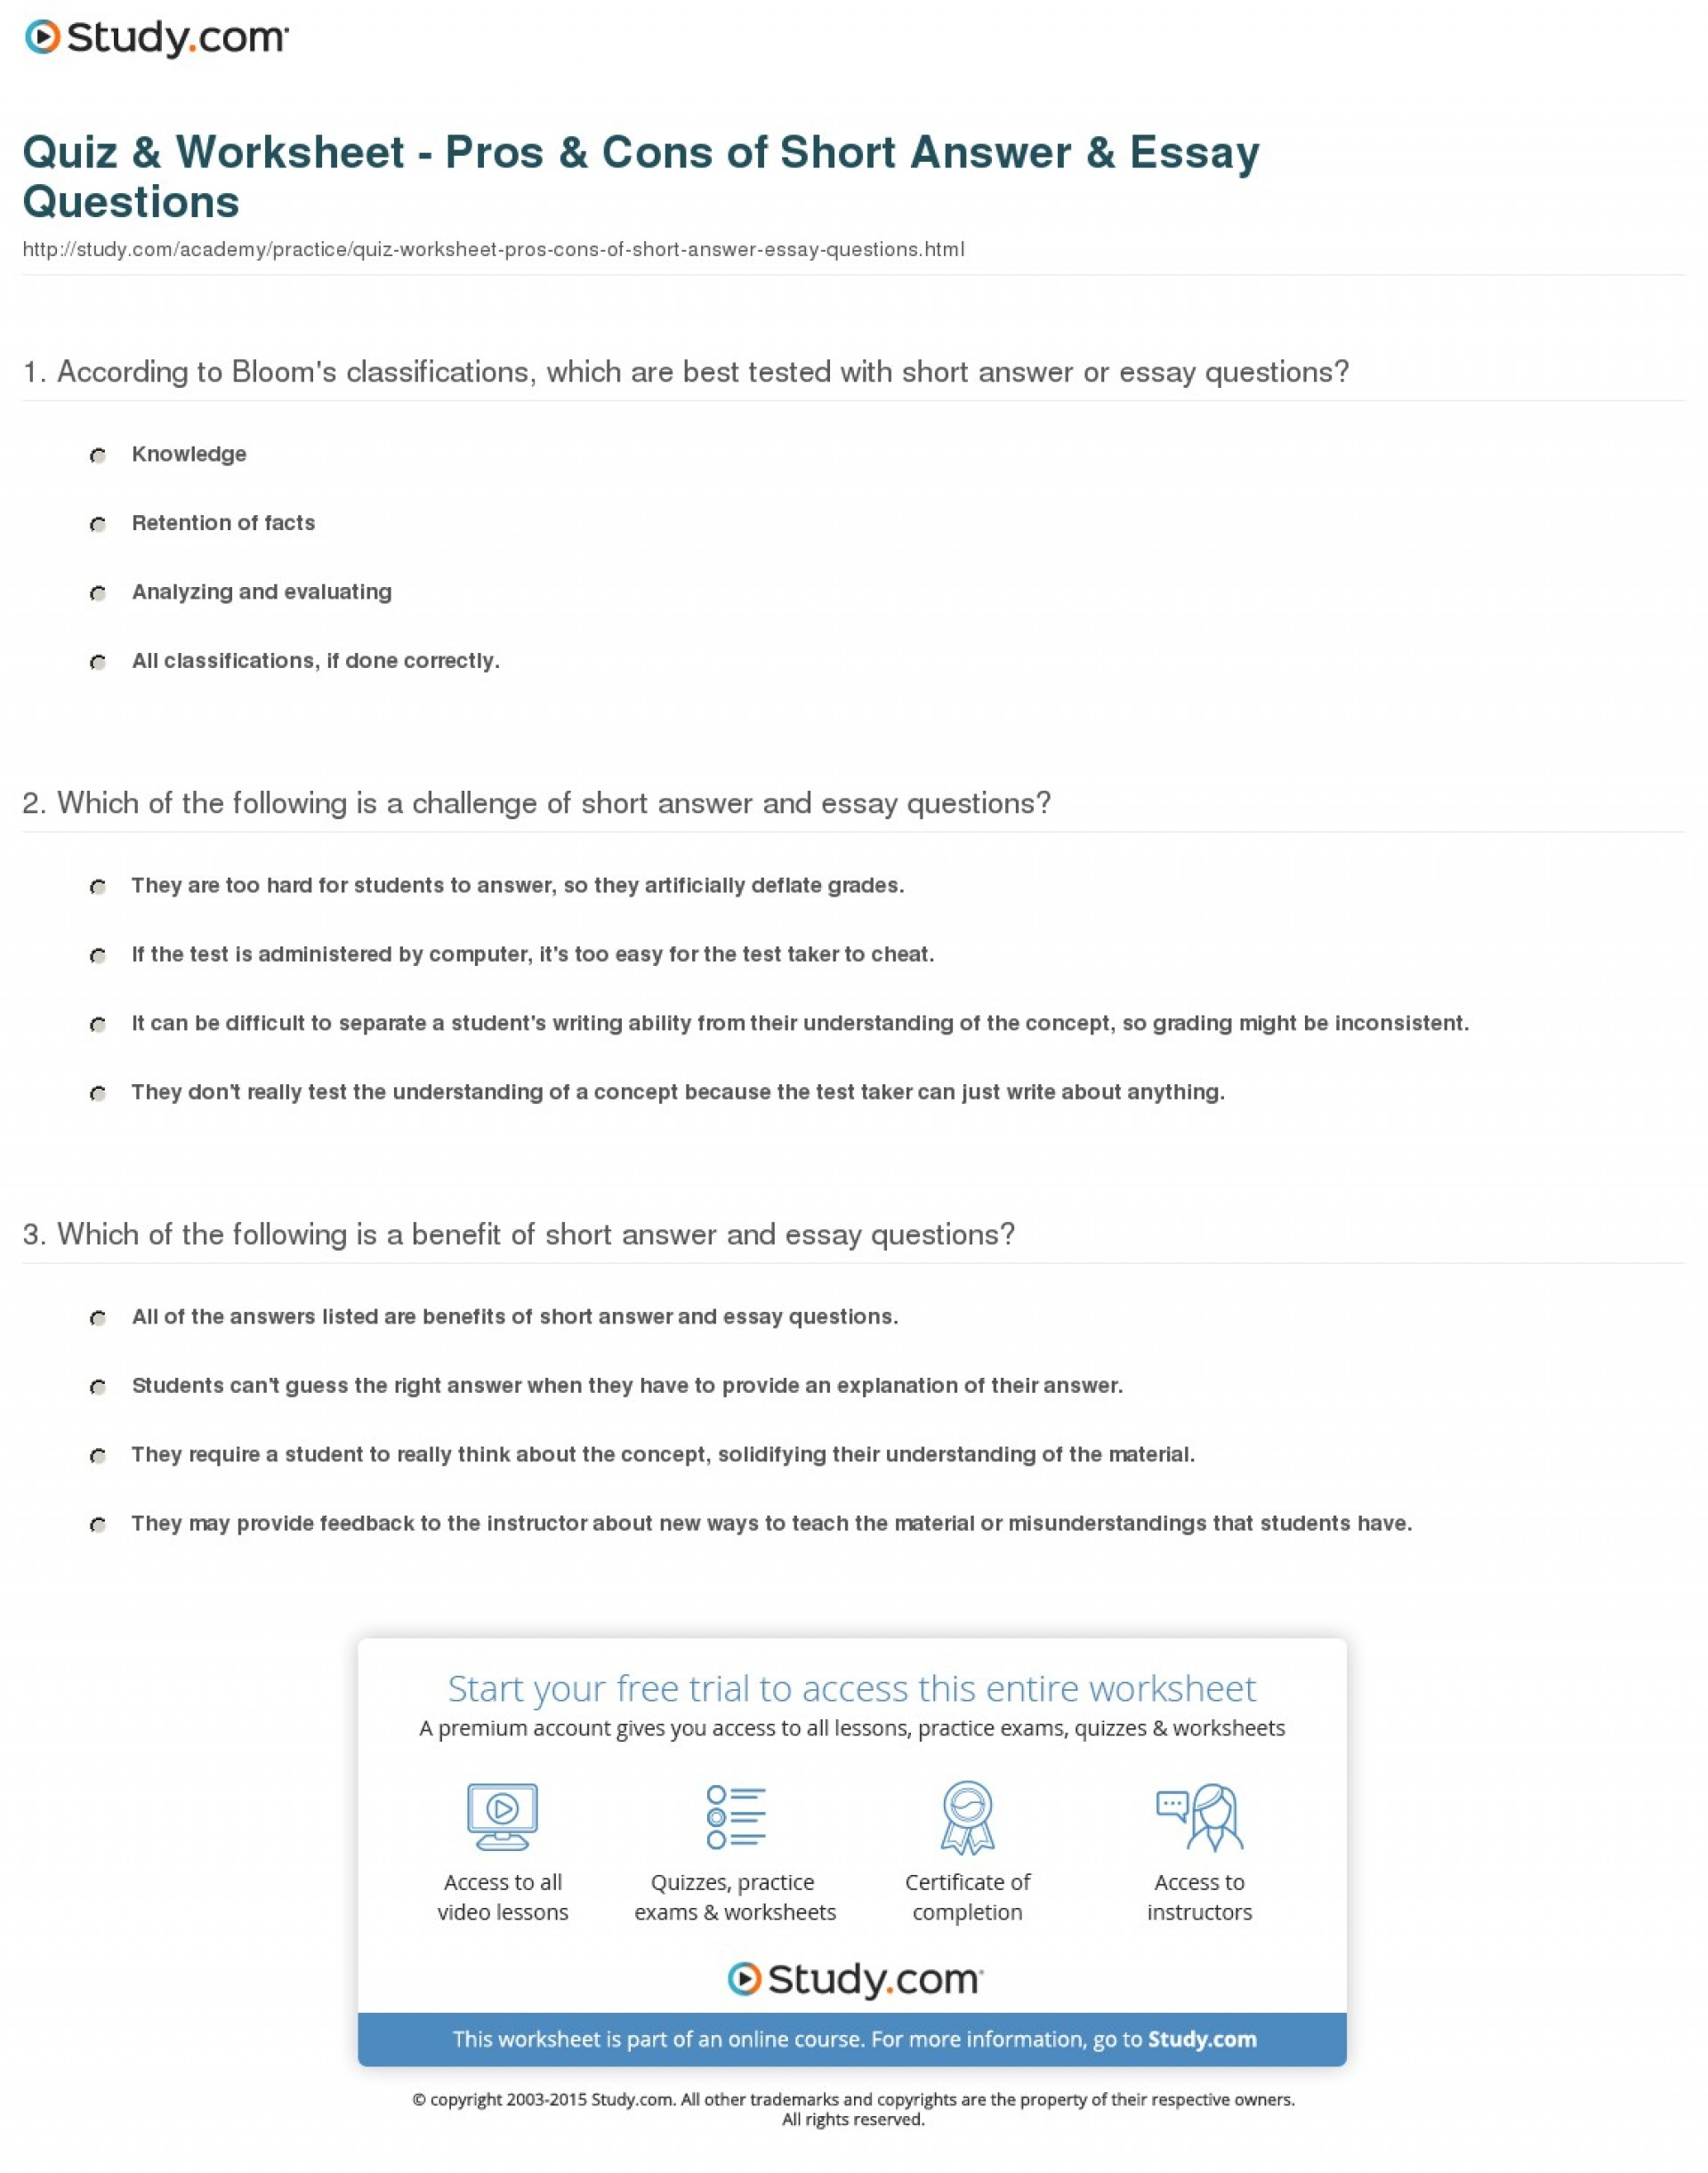 016 Writing Pros And Cons Essay Example Quiz Worksheet Of Short Answer Fascinating Explain How To Write An About The A Job 1920